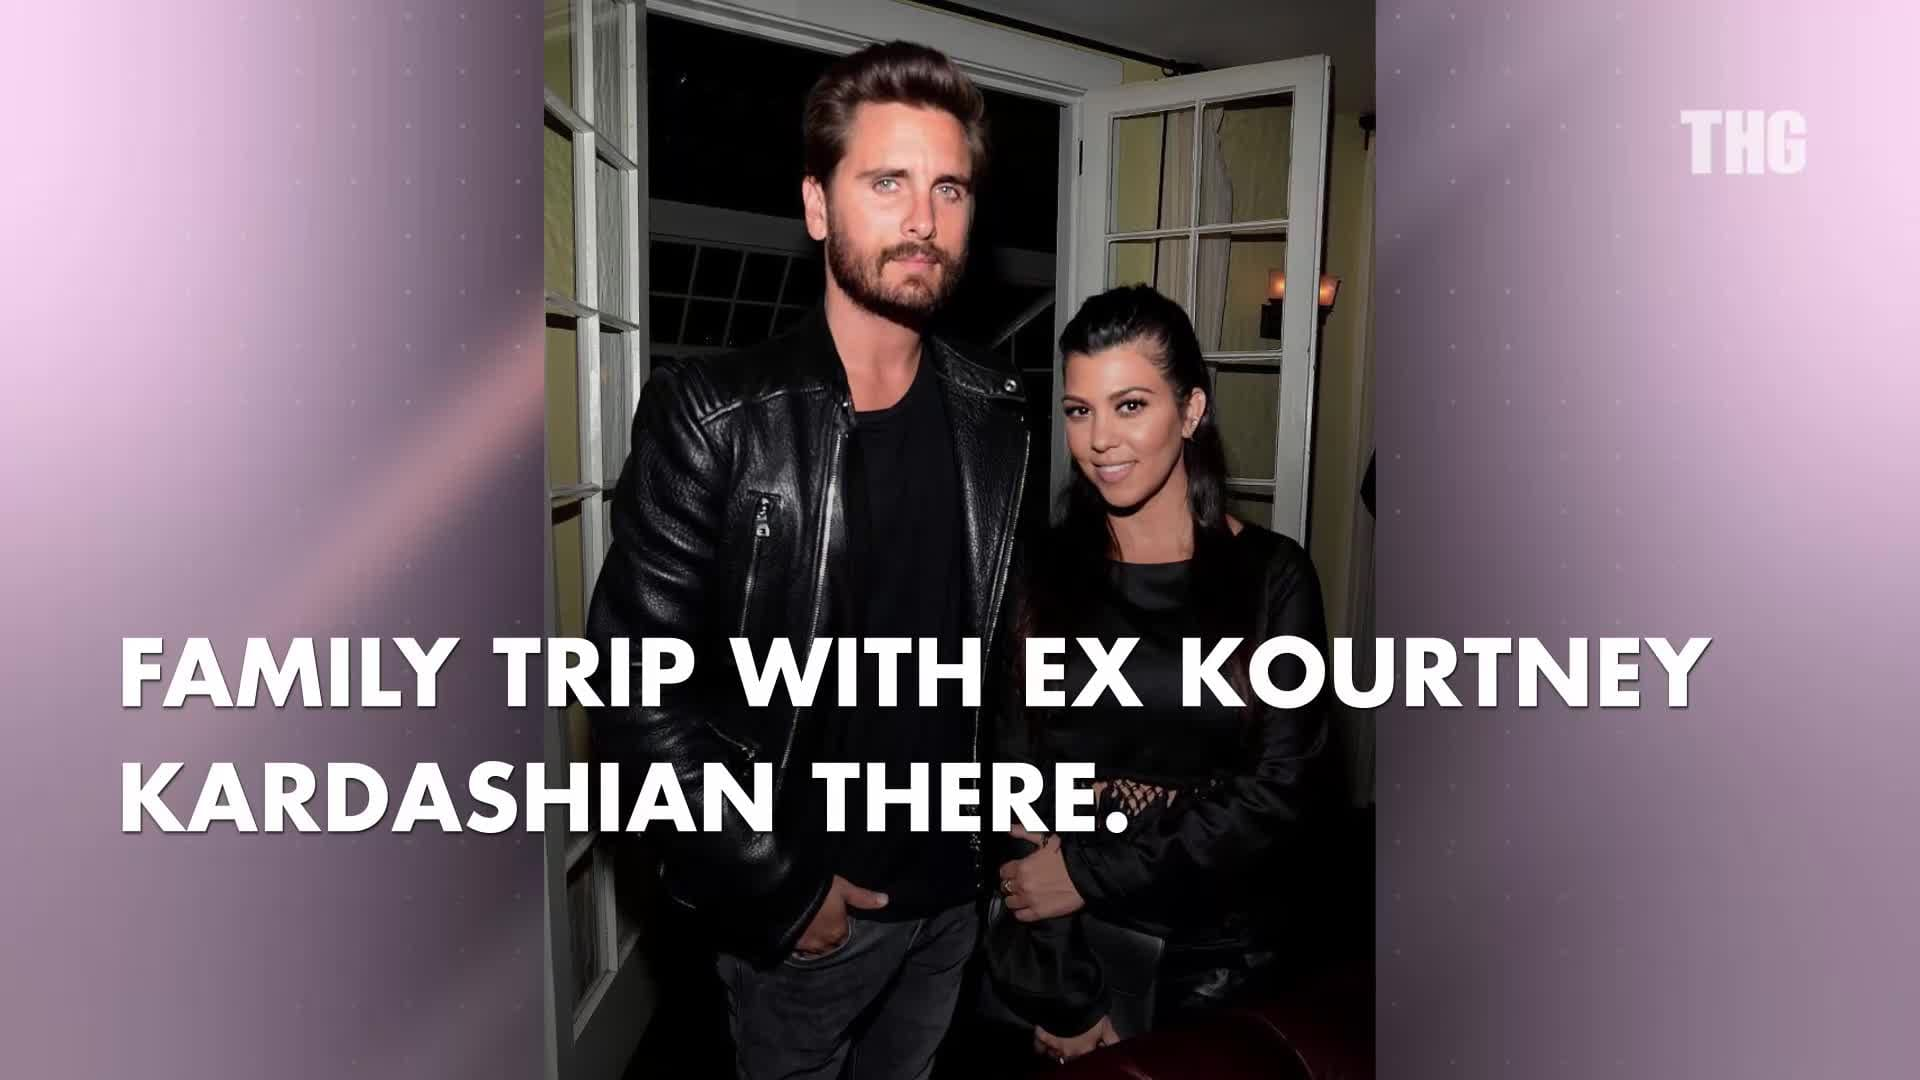 Is kourtney kardashian a sex addict